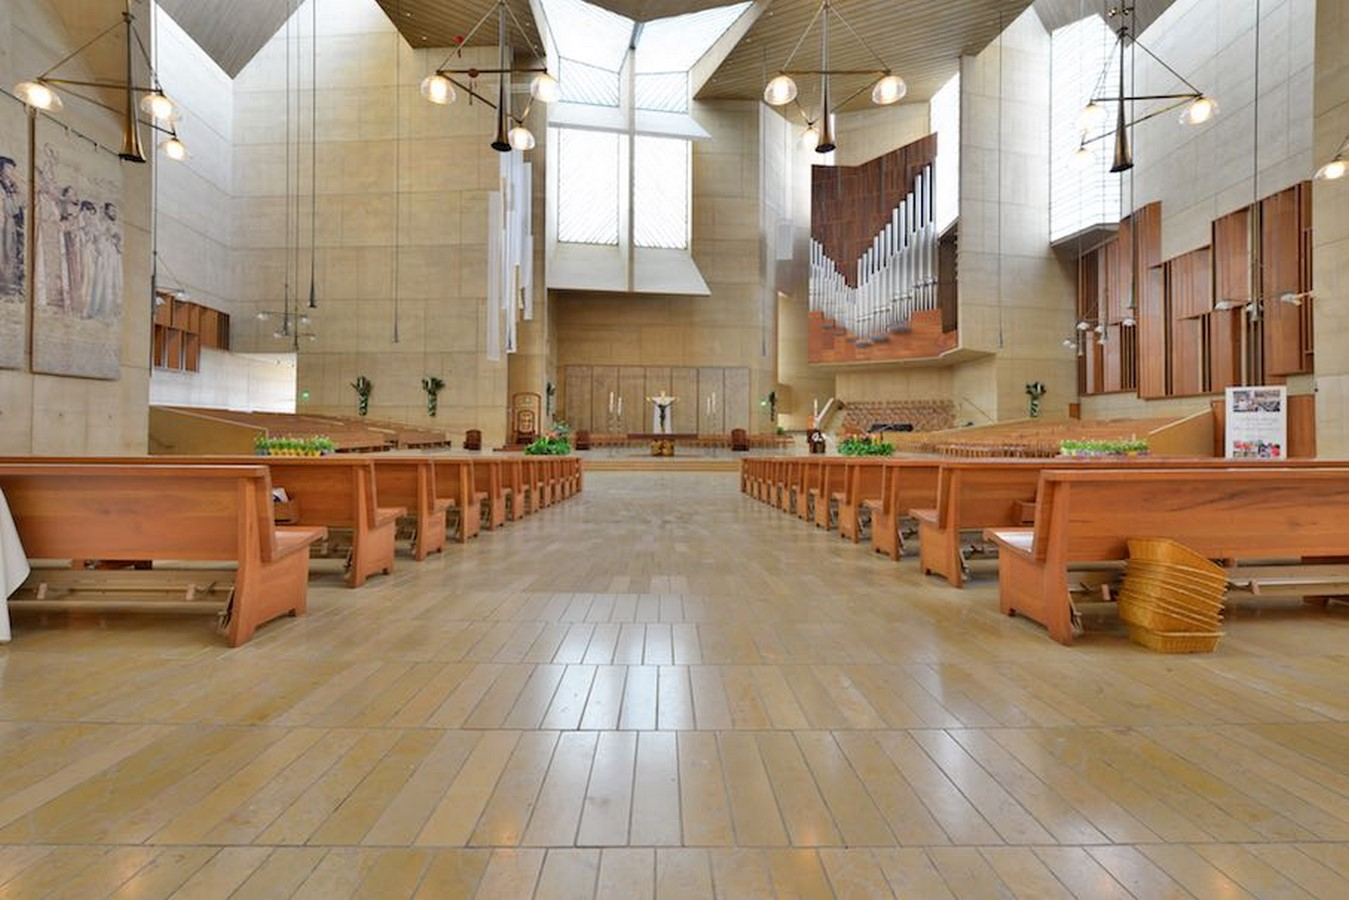 Cathedral of Our Lady of the Angels by Rafael Moneo: A series of acute and obtuse angles - Sheet8